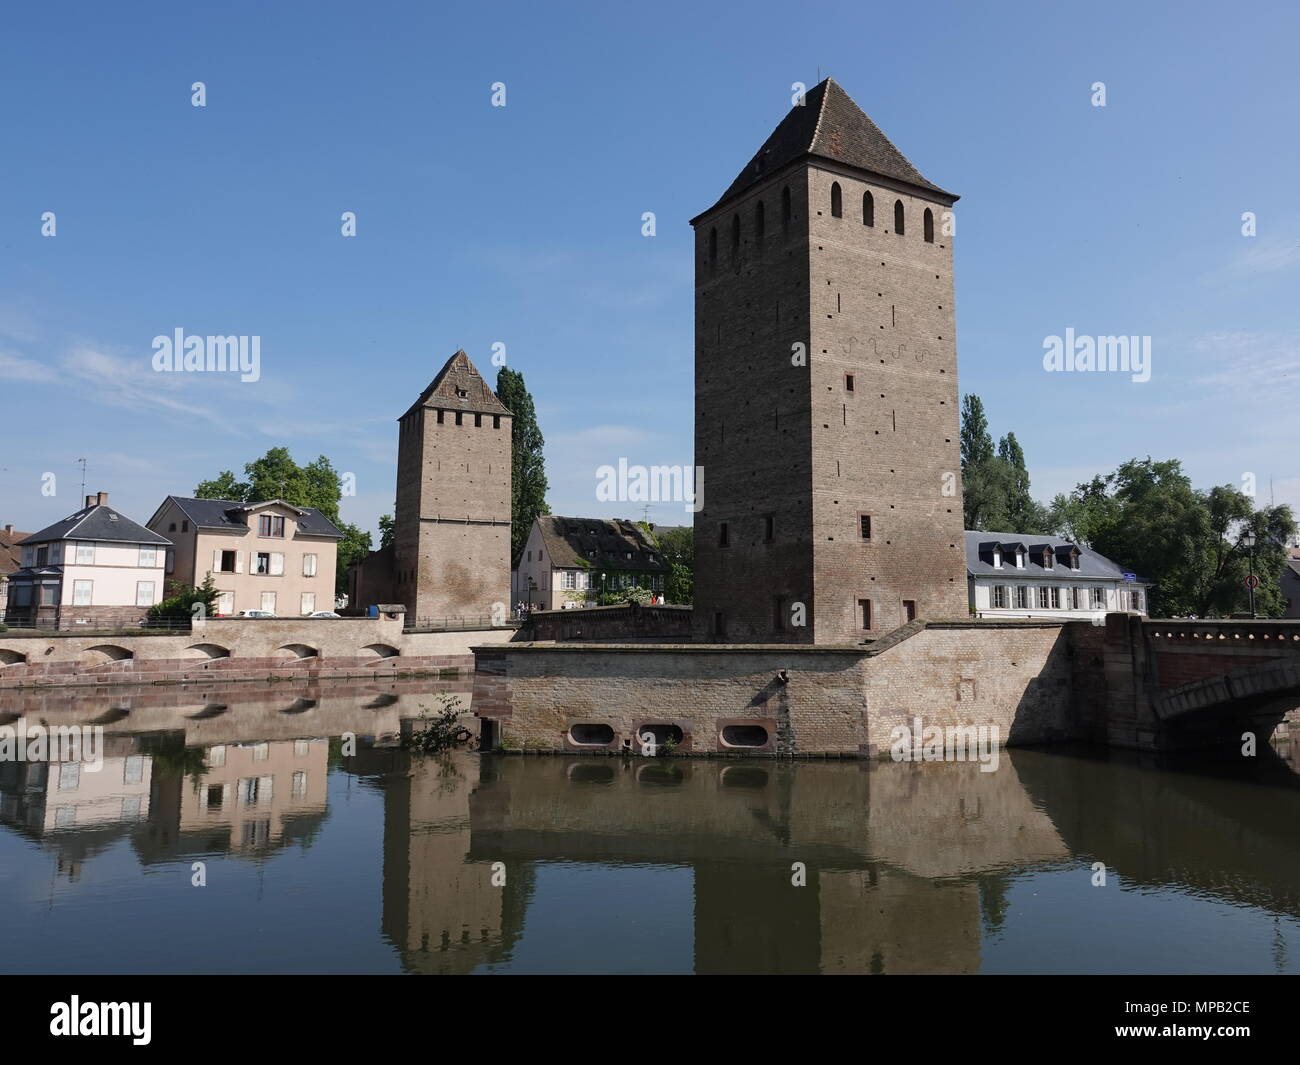 Brick towers along the Ill River, remaining parts of the old fortifications, Strasbourg, France - Stock Image